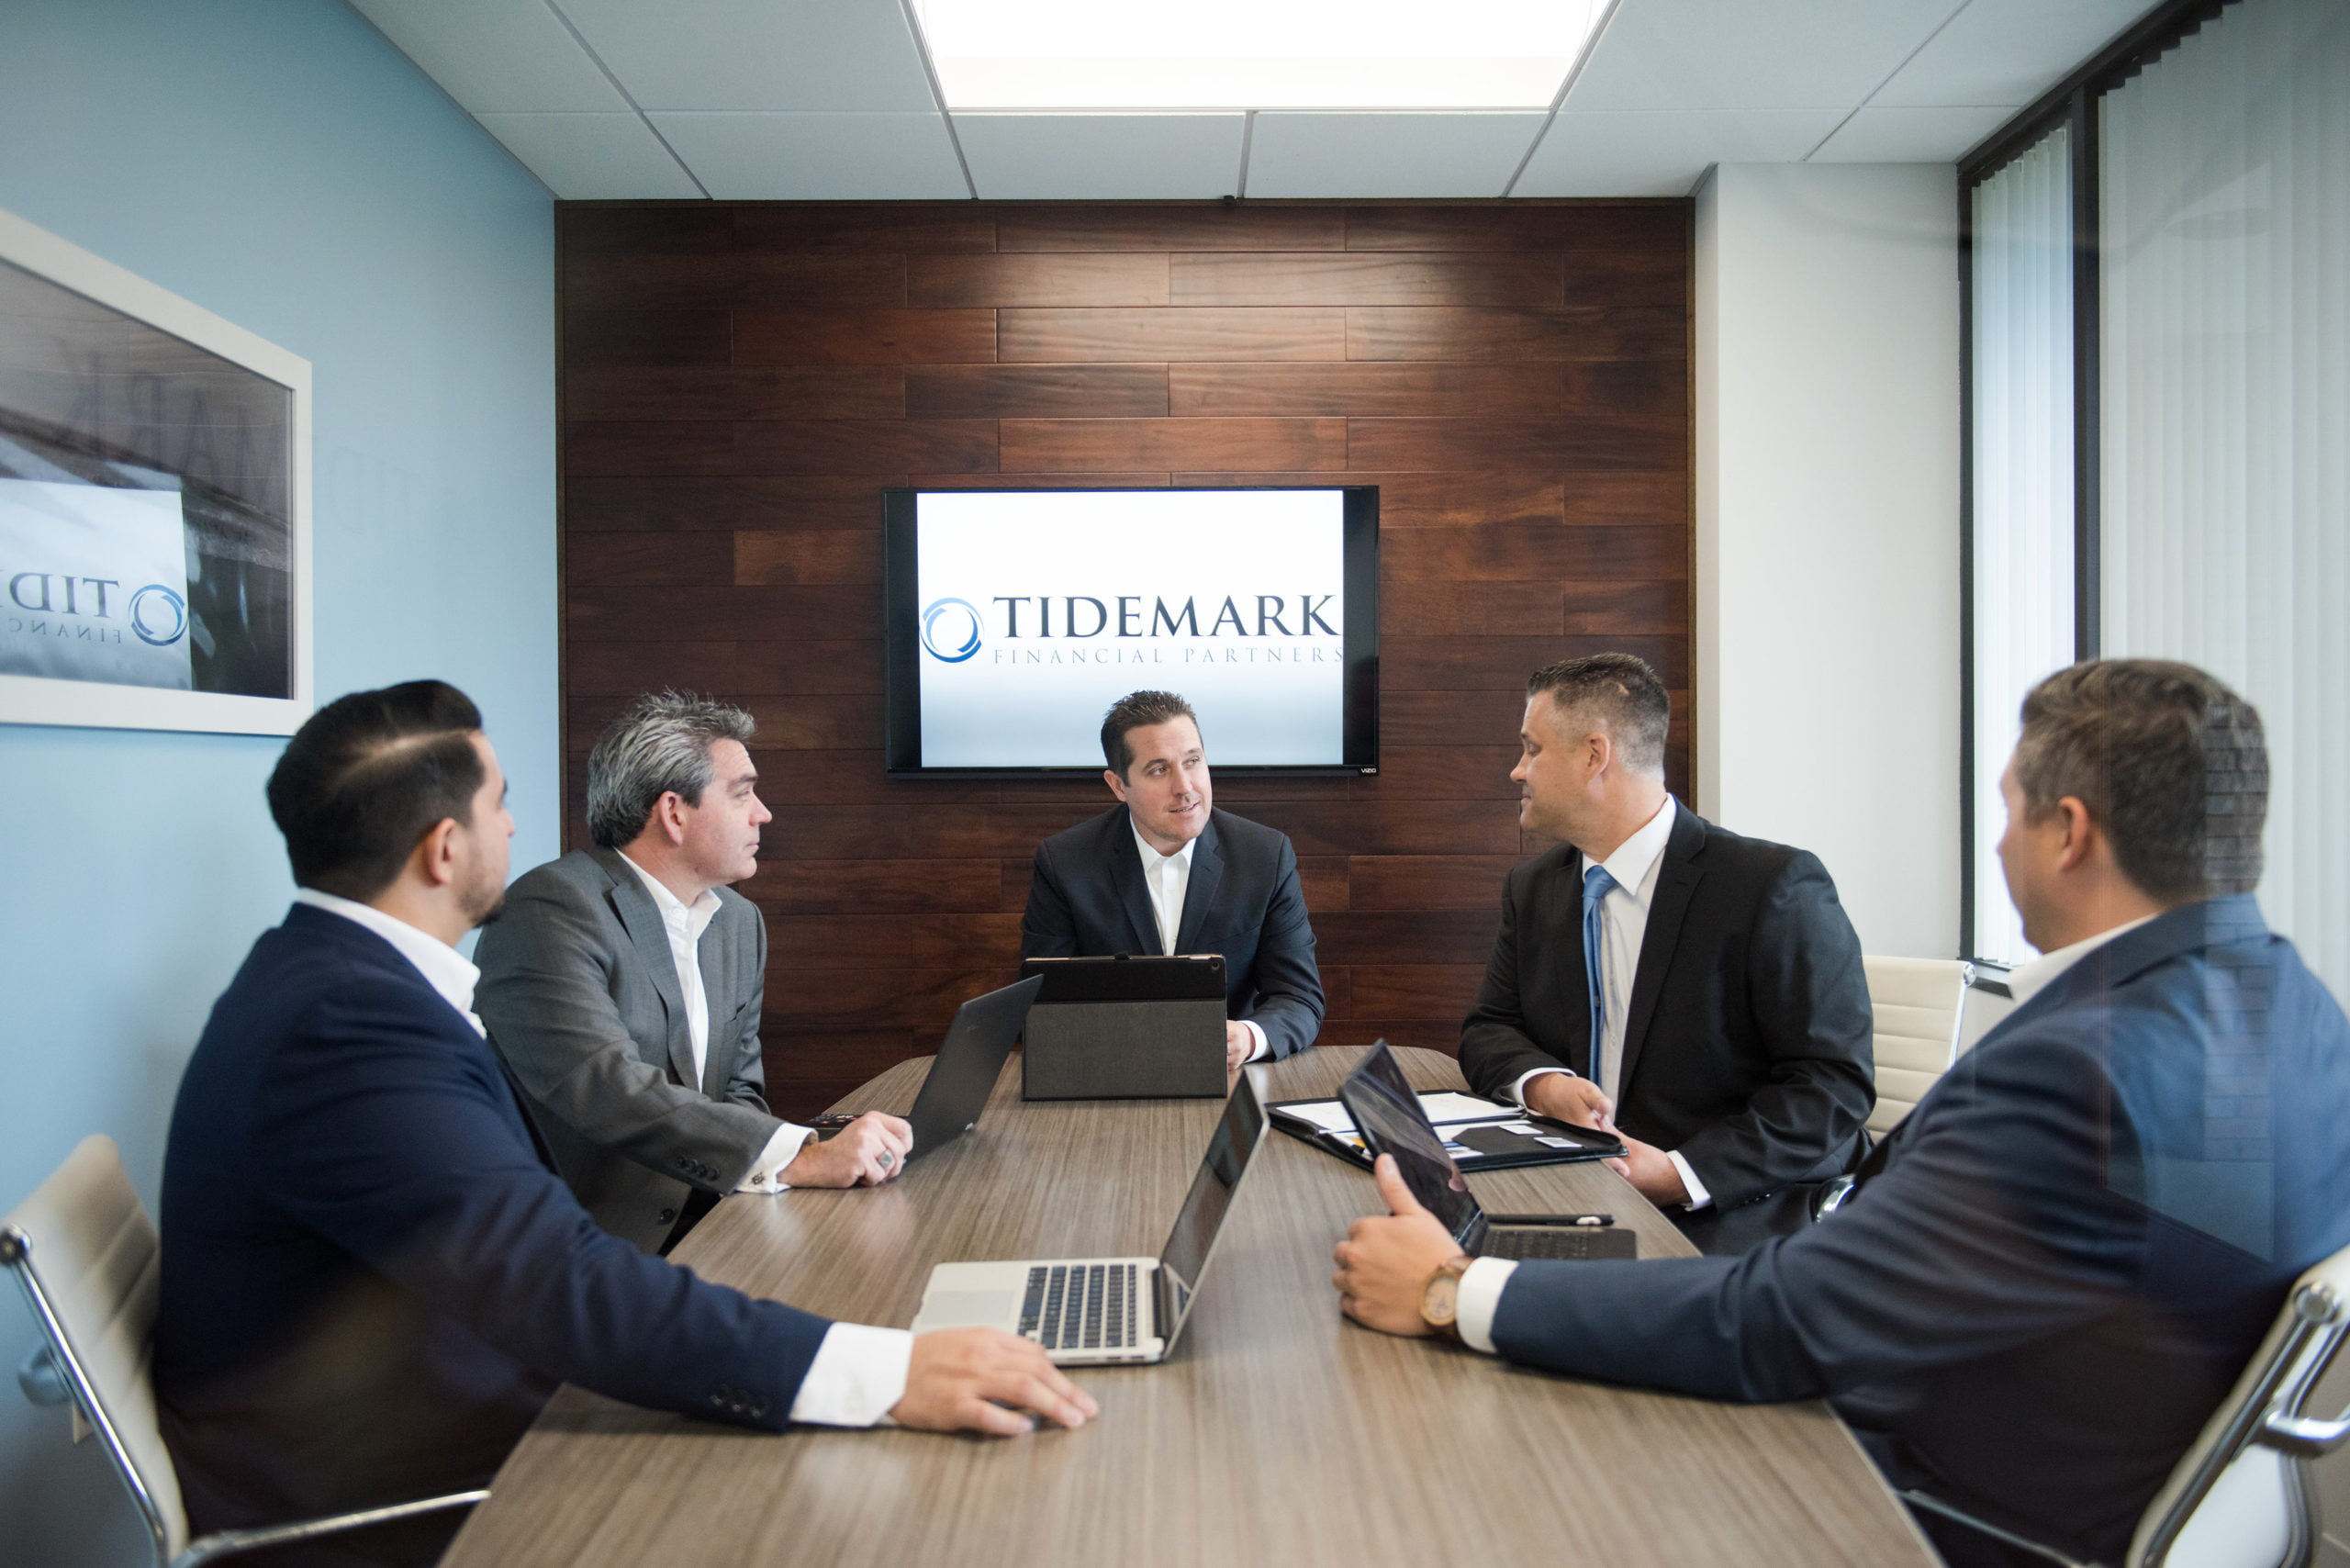 Tidemark Financial Partners Announces New Hires and a Promotion Amid Continued Growth